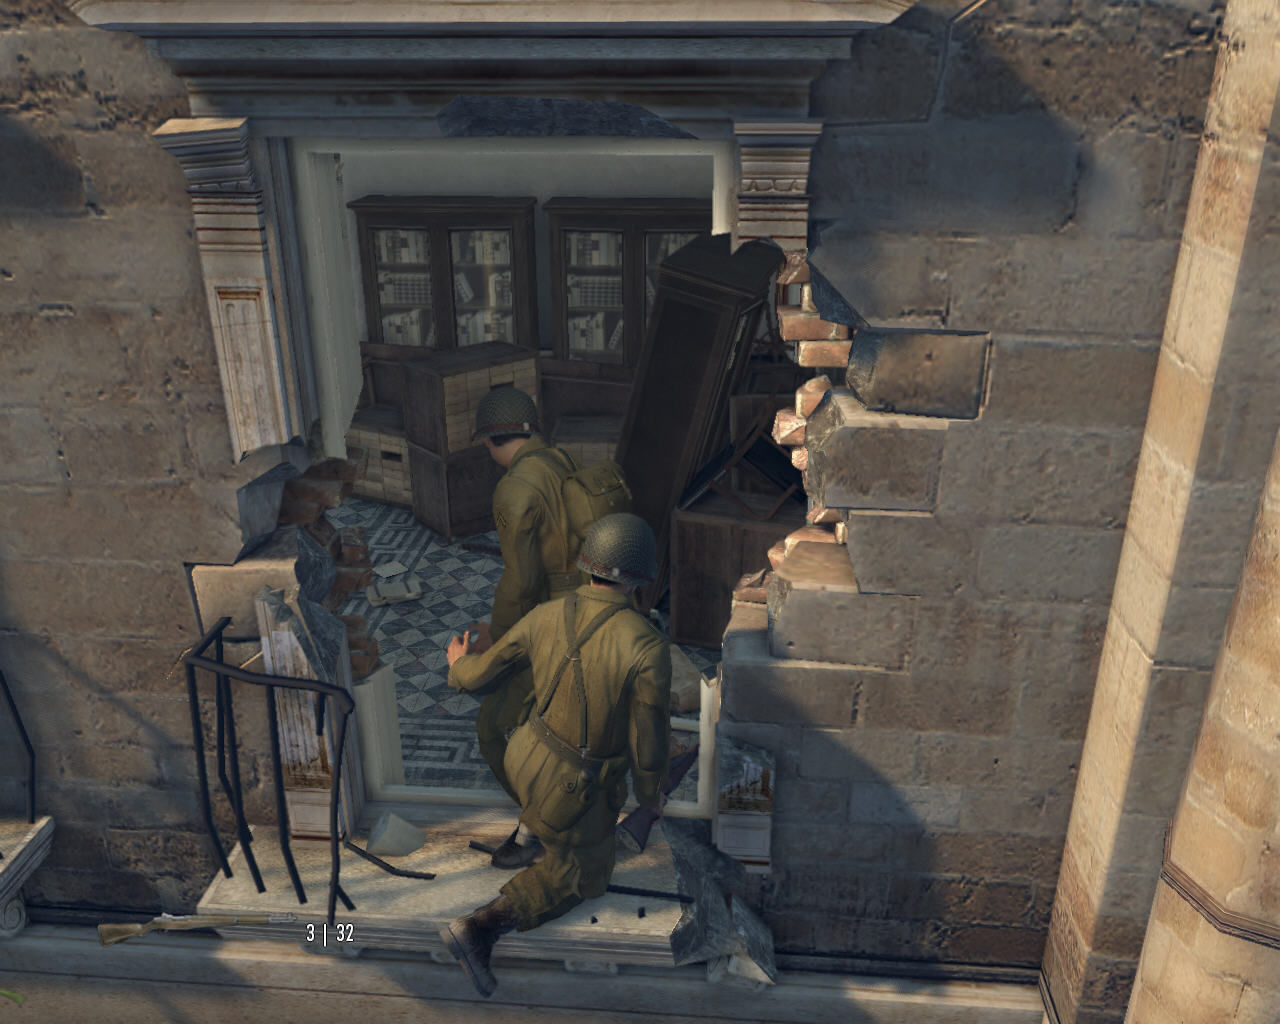 Mafia II Windows The first mission in the game takes place in Italy during World War II. Vito the soldier climbs into a house